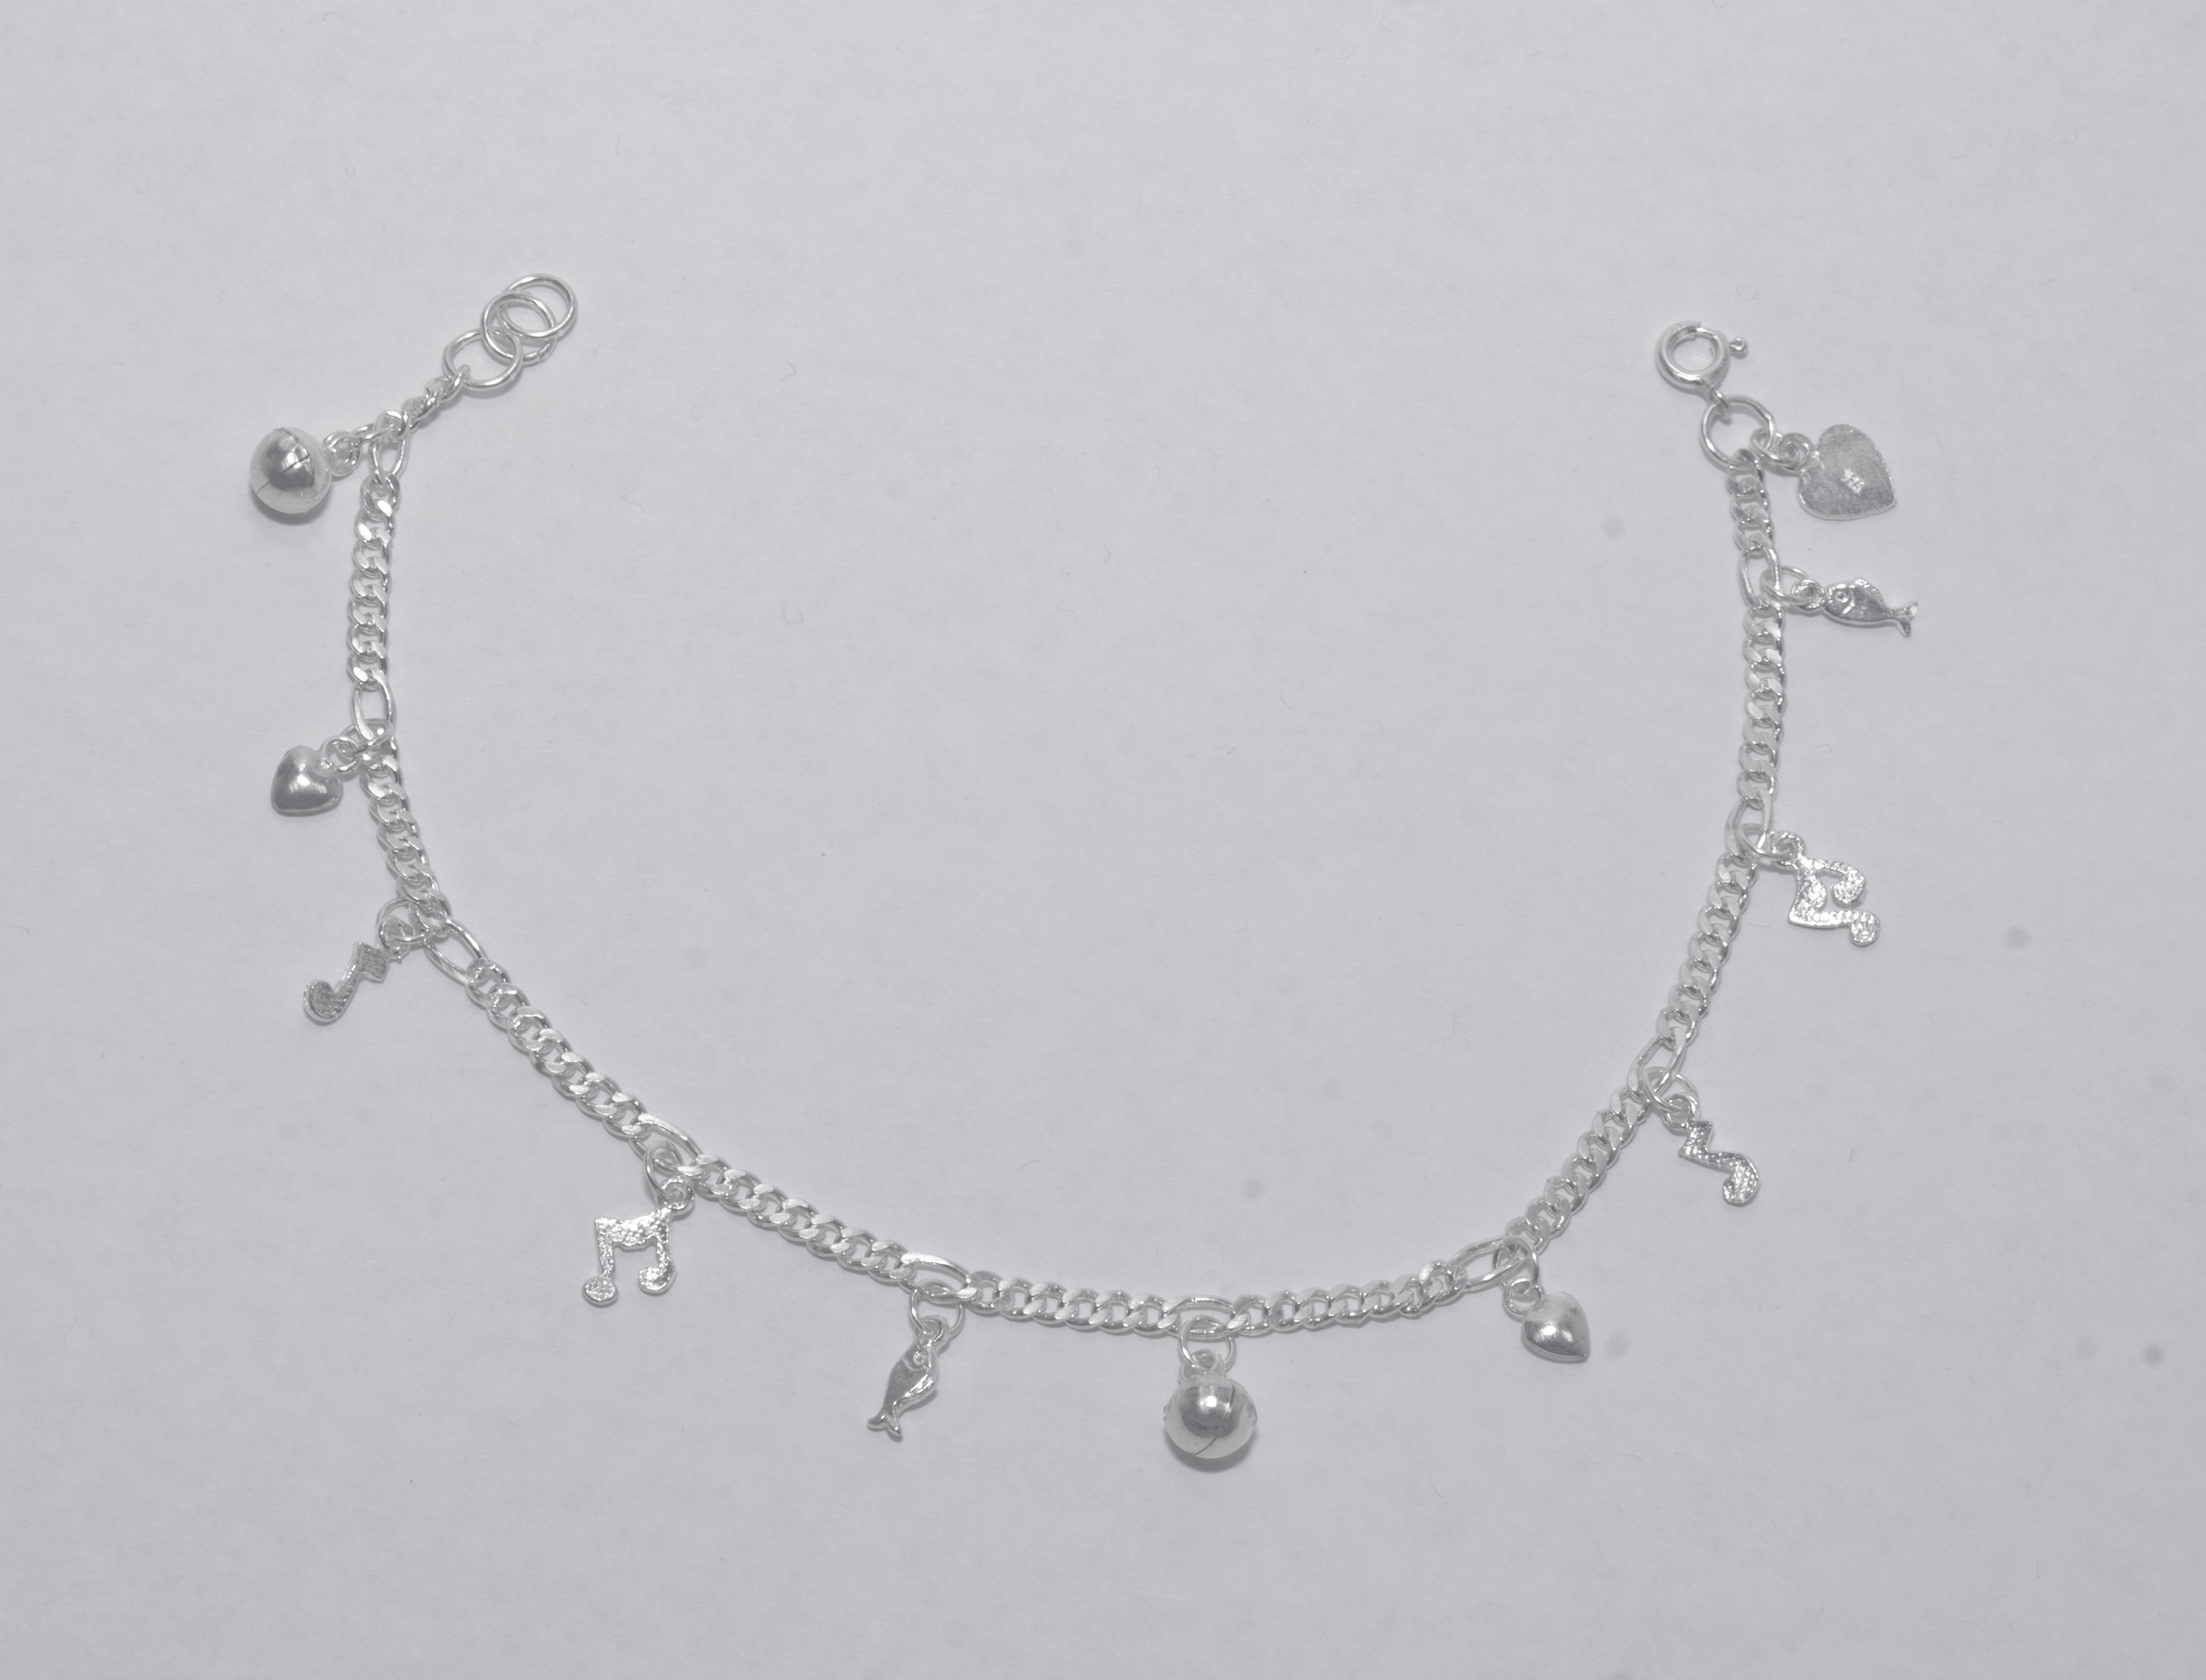 Silver anklets for Charm bell ... jrqitmi